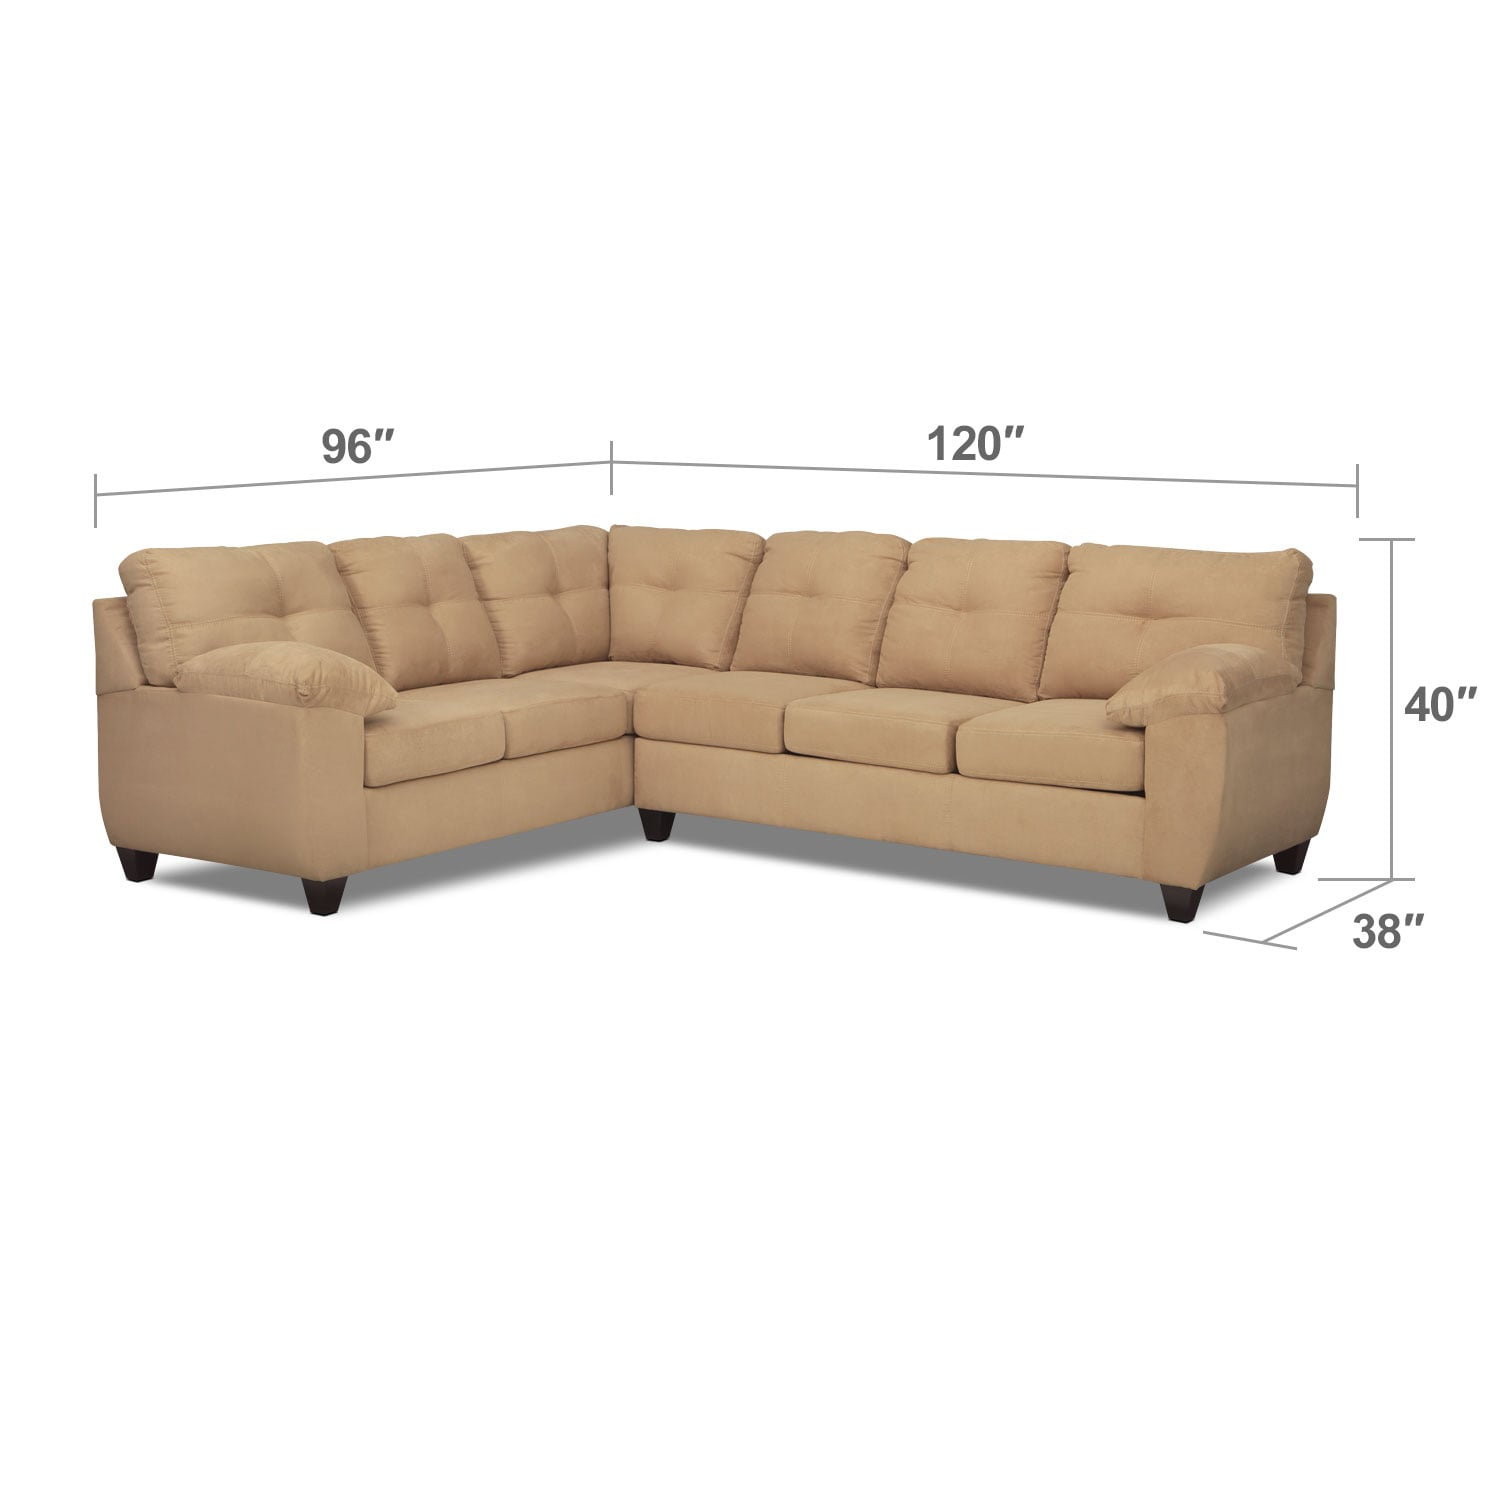 Living Room Furniture - Rialto 2-Piece Sectional with Left-Facing Corner Sofa - Camel